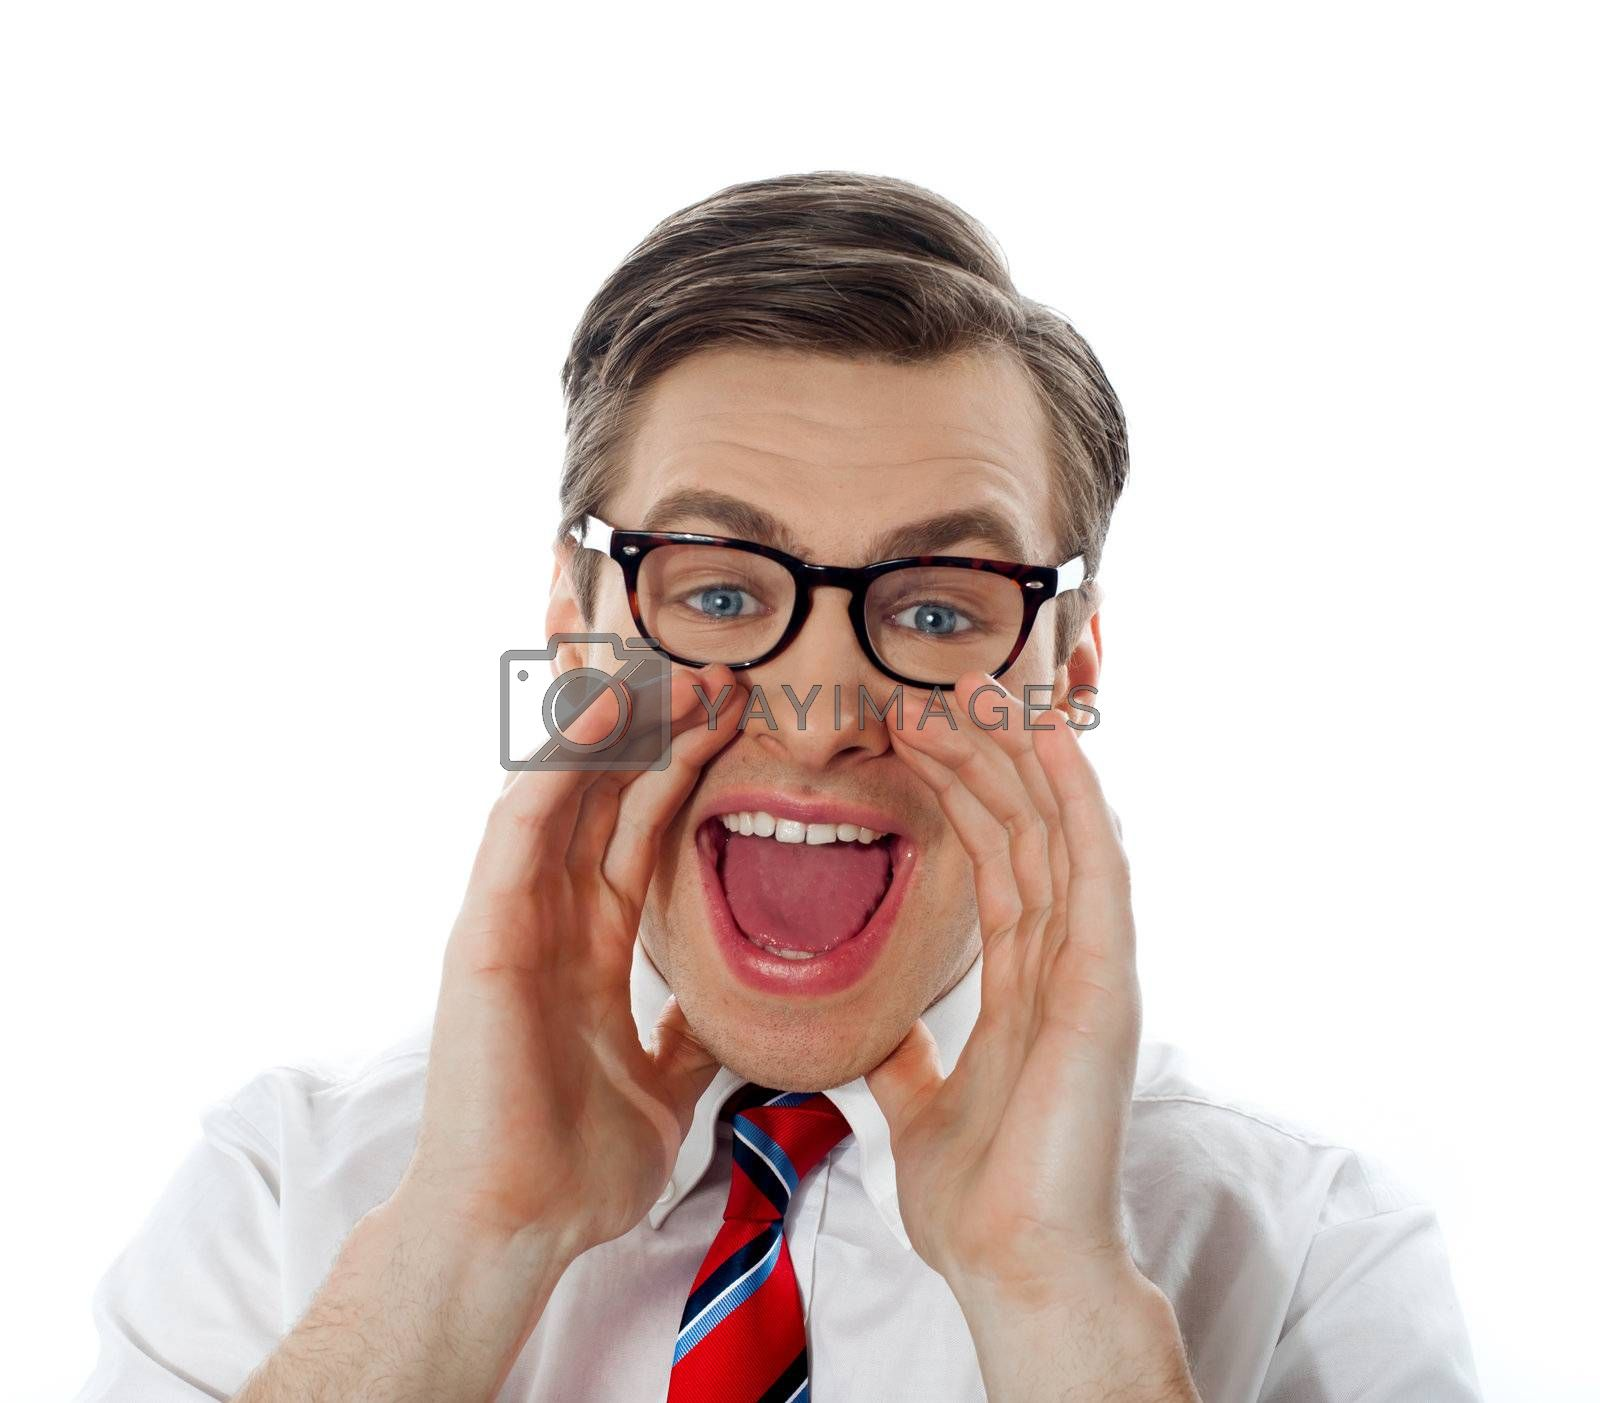 Excited businessman shouting in joy, closeup shot